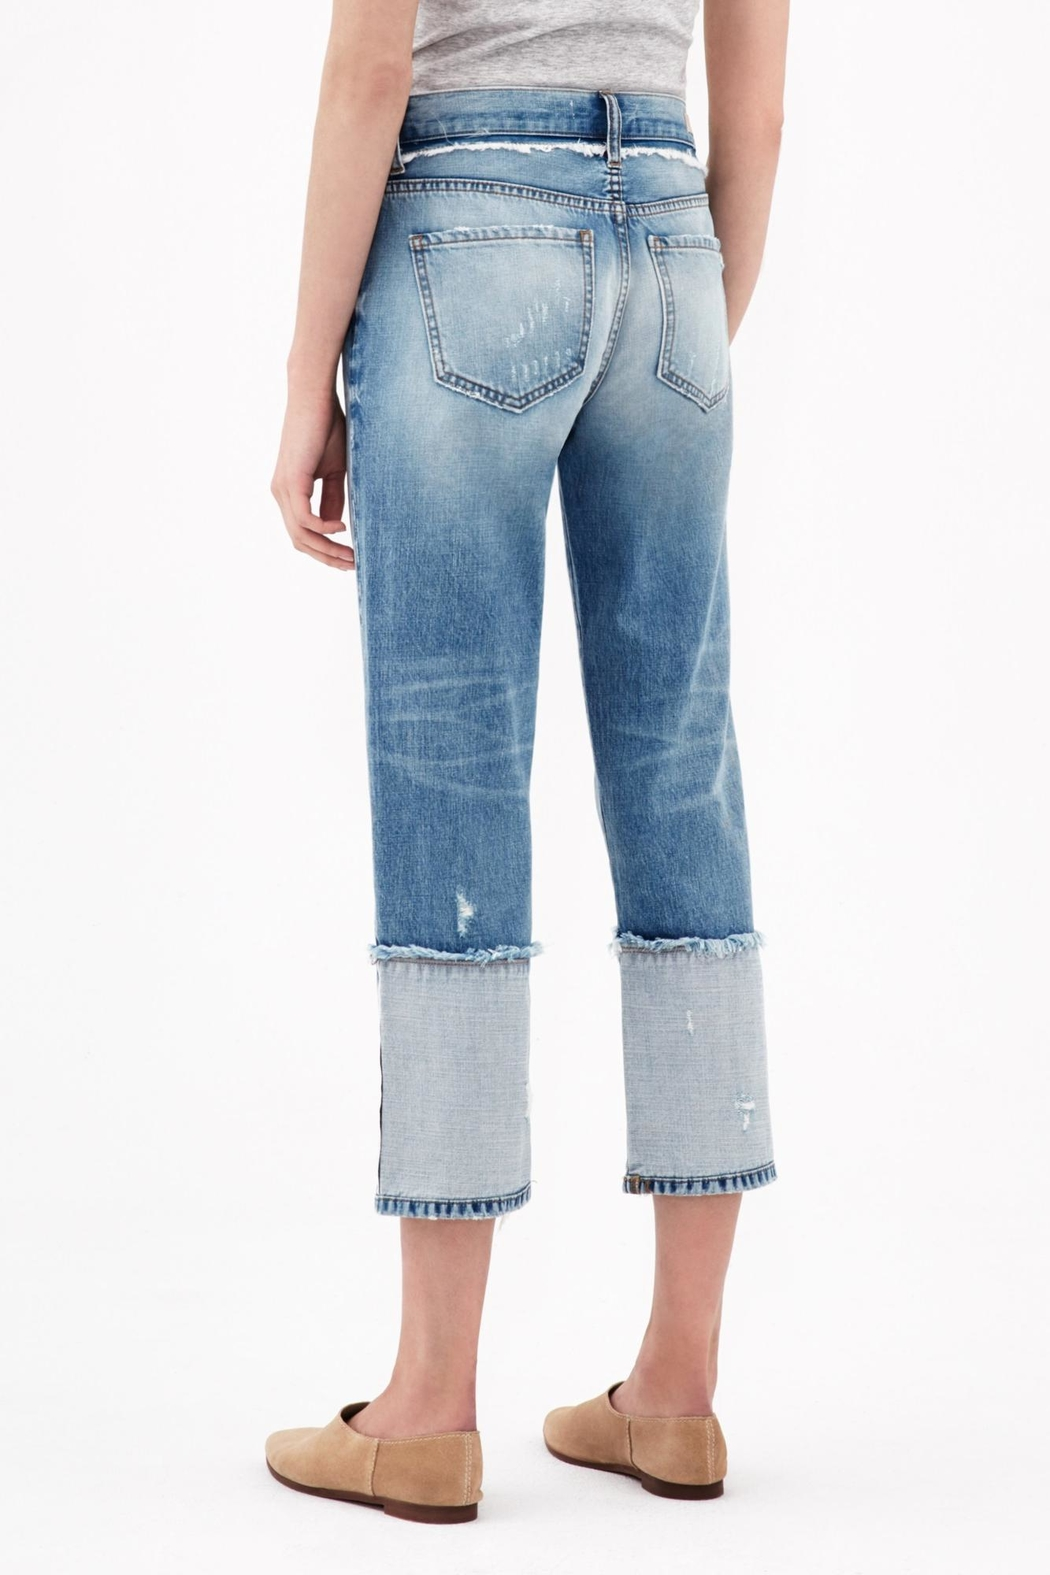 ei8ht dreams Reverse Selvedge Straight Crop - Front Full Image